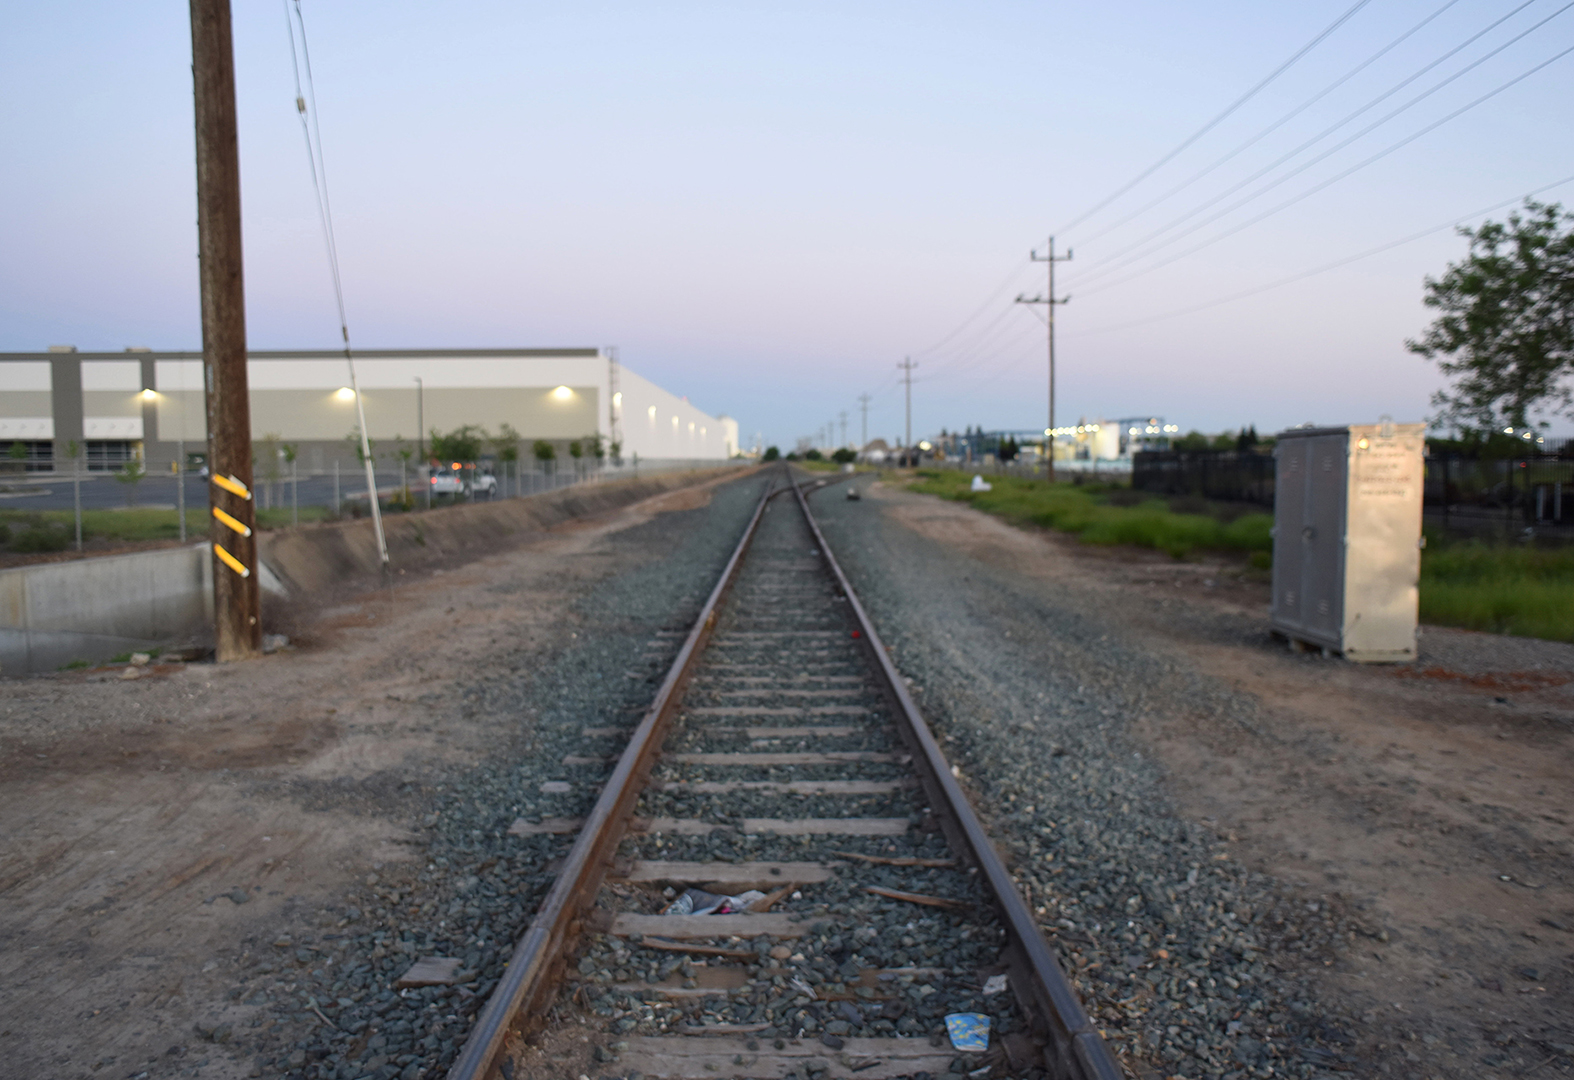 The railroad tracks at Fruitridge Road where Lance recovered Little Ricky.